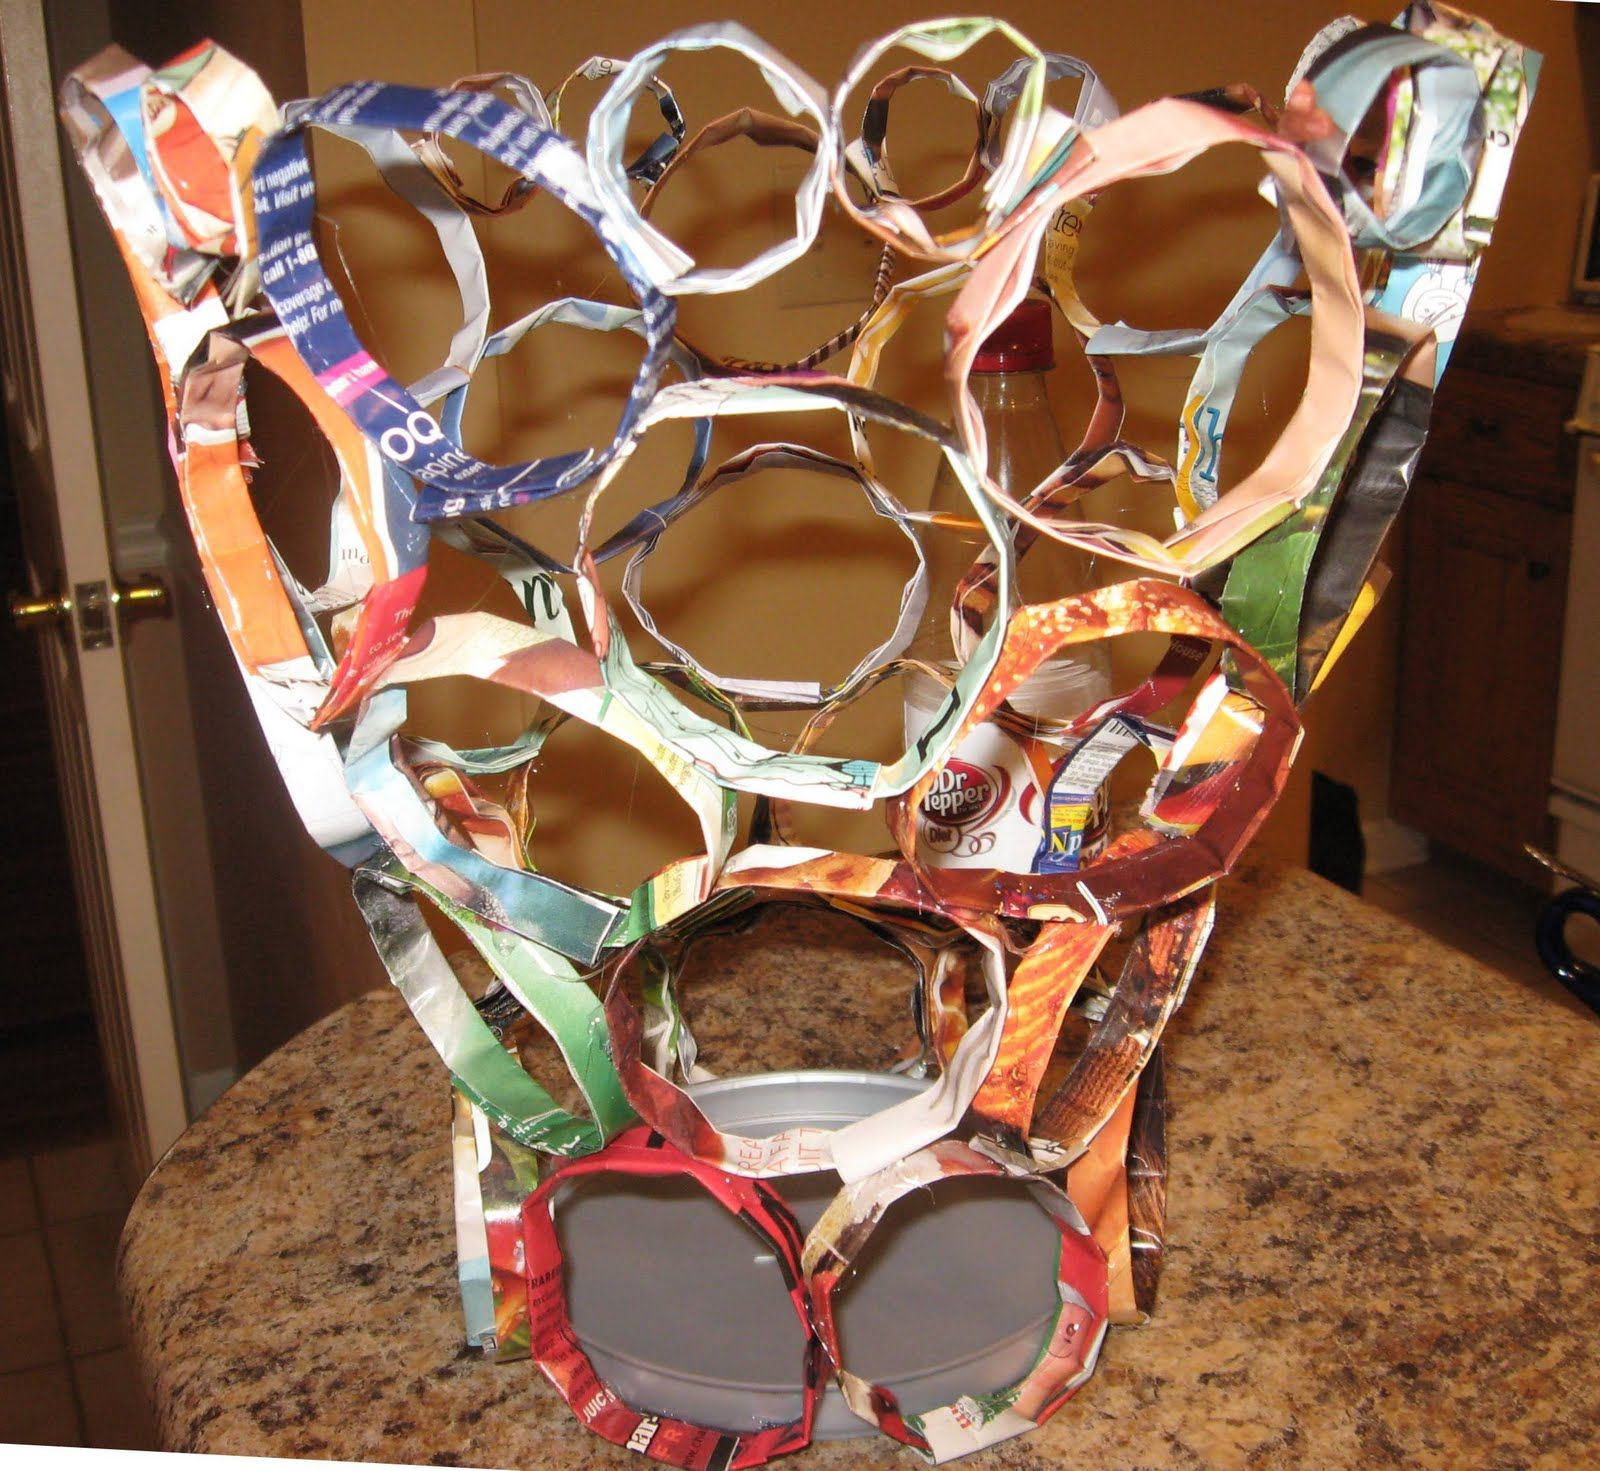 Art projects for teens creative recycled projects for Easy recycling ideas